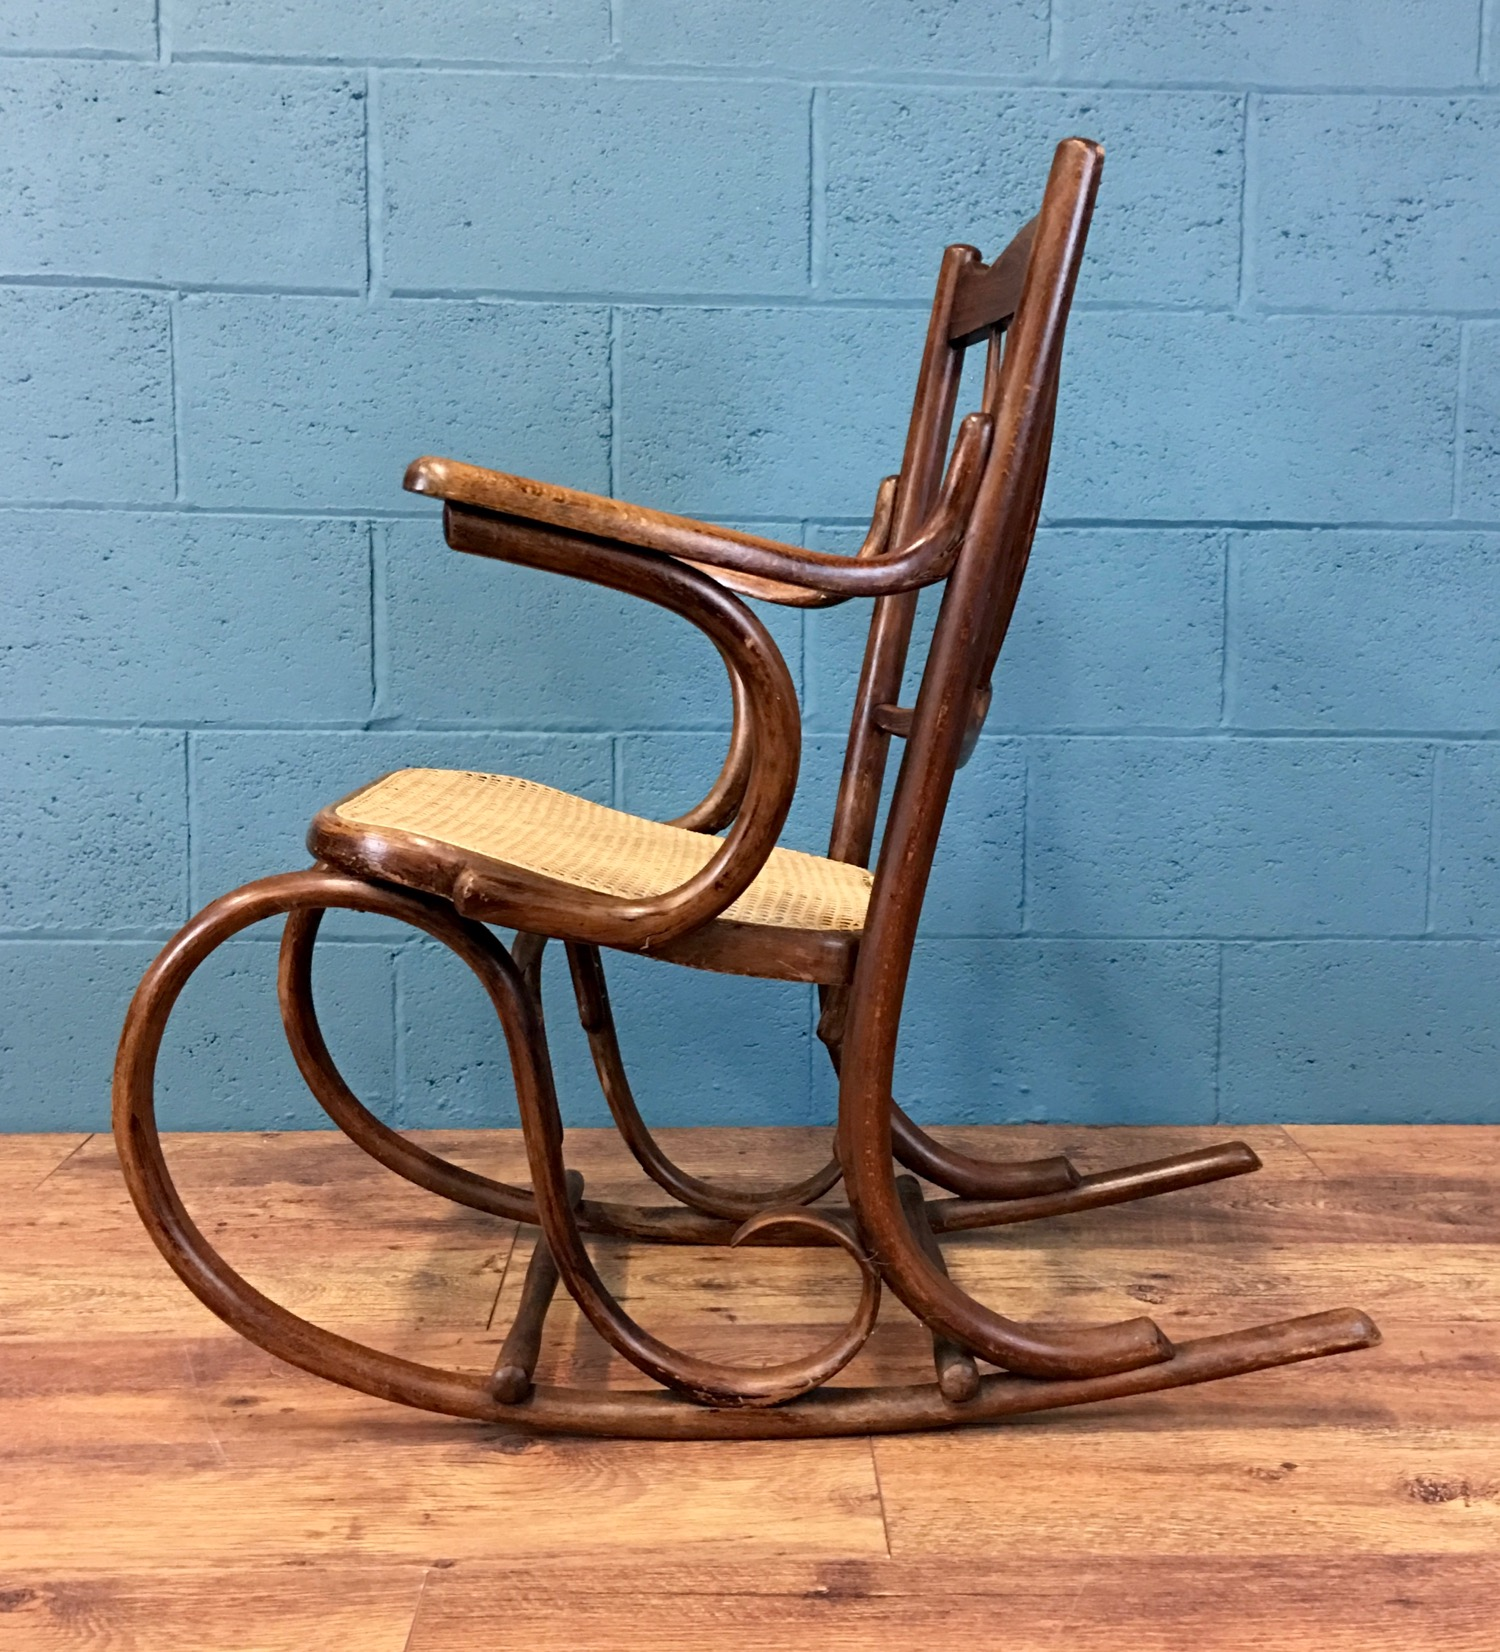 - The courier delivered the chair safely and in good order - it's a lovely chair, many thanks!Lorna. Scotland